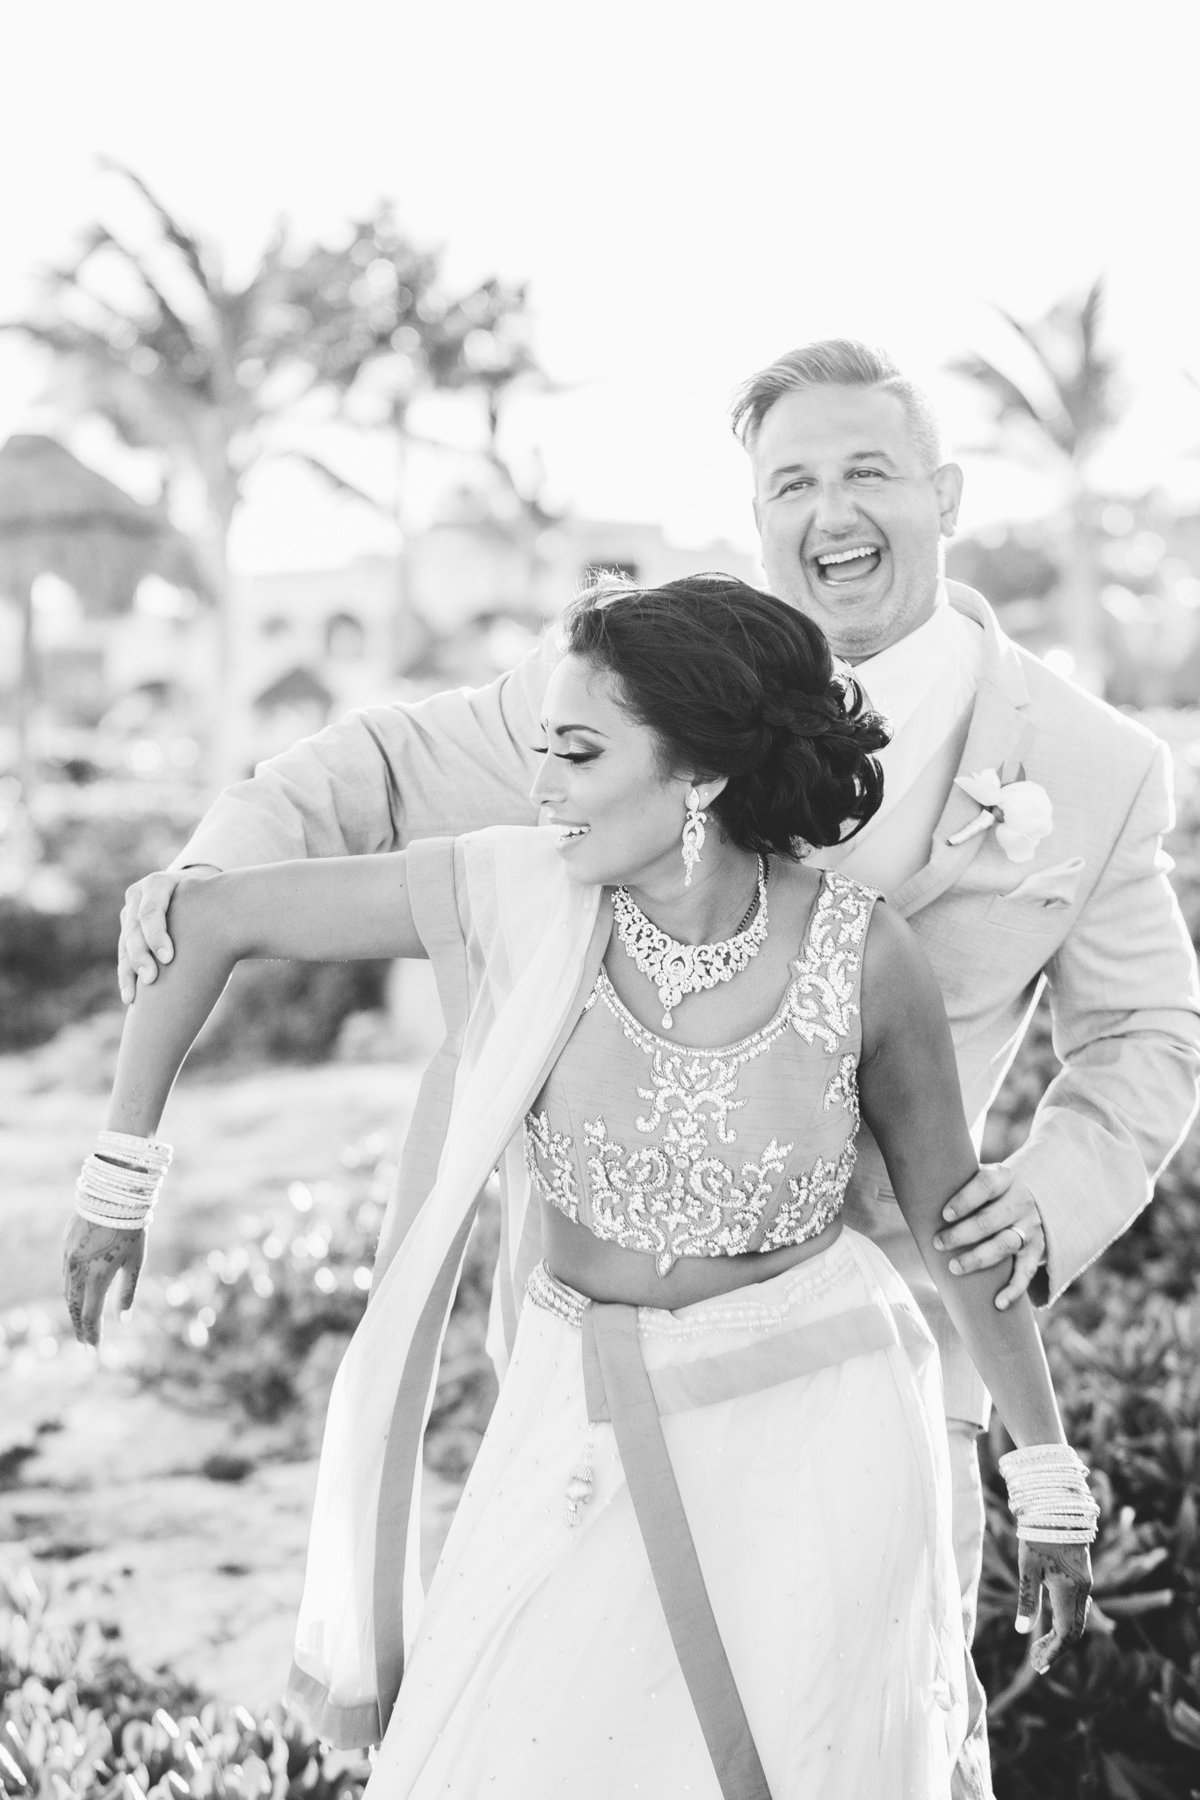 Who says you can't loosen up and just have fun?  Photo by destination wedding photographer Rebecca Cerasani.